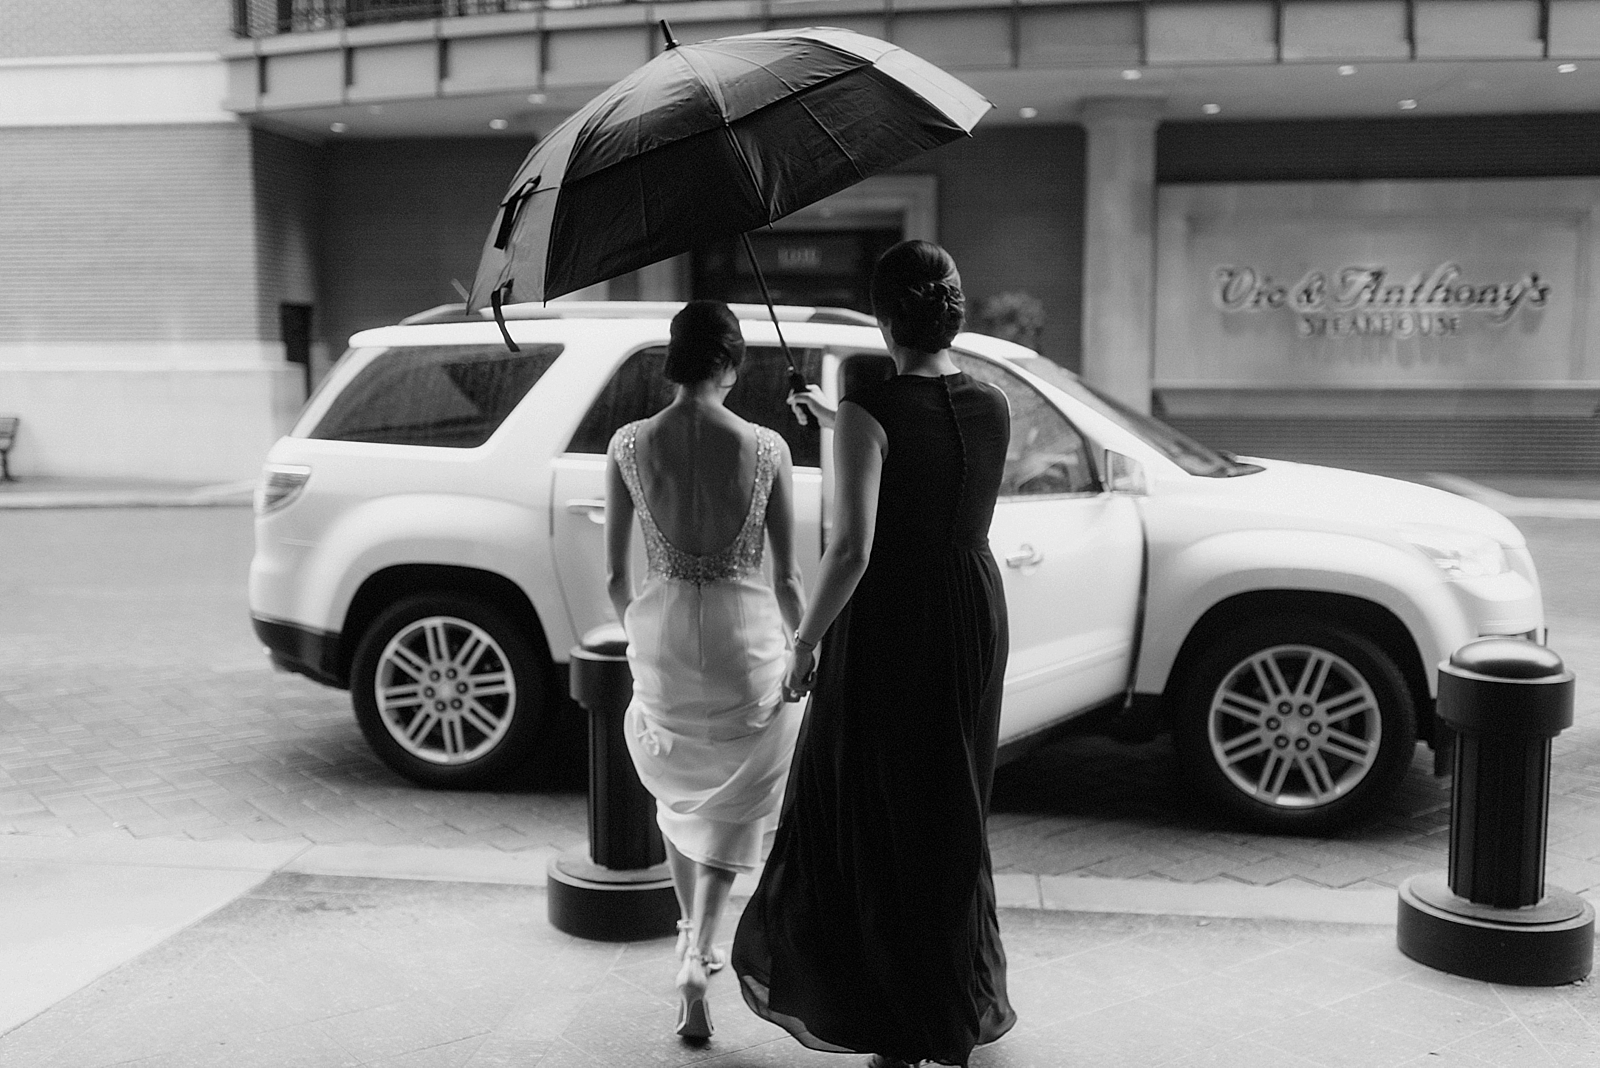 Timeless moment as bride enters a waiting car for her rainy Houston wedding